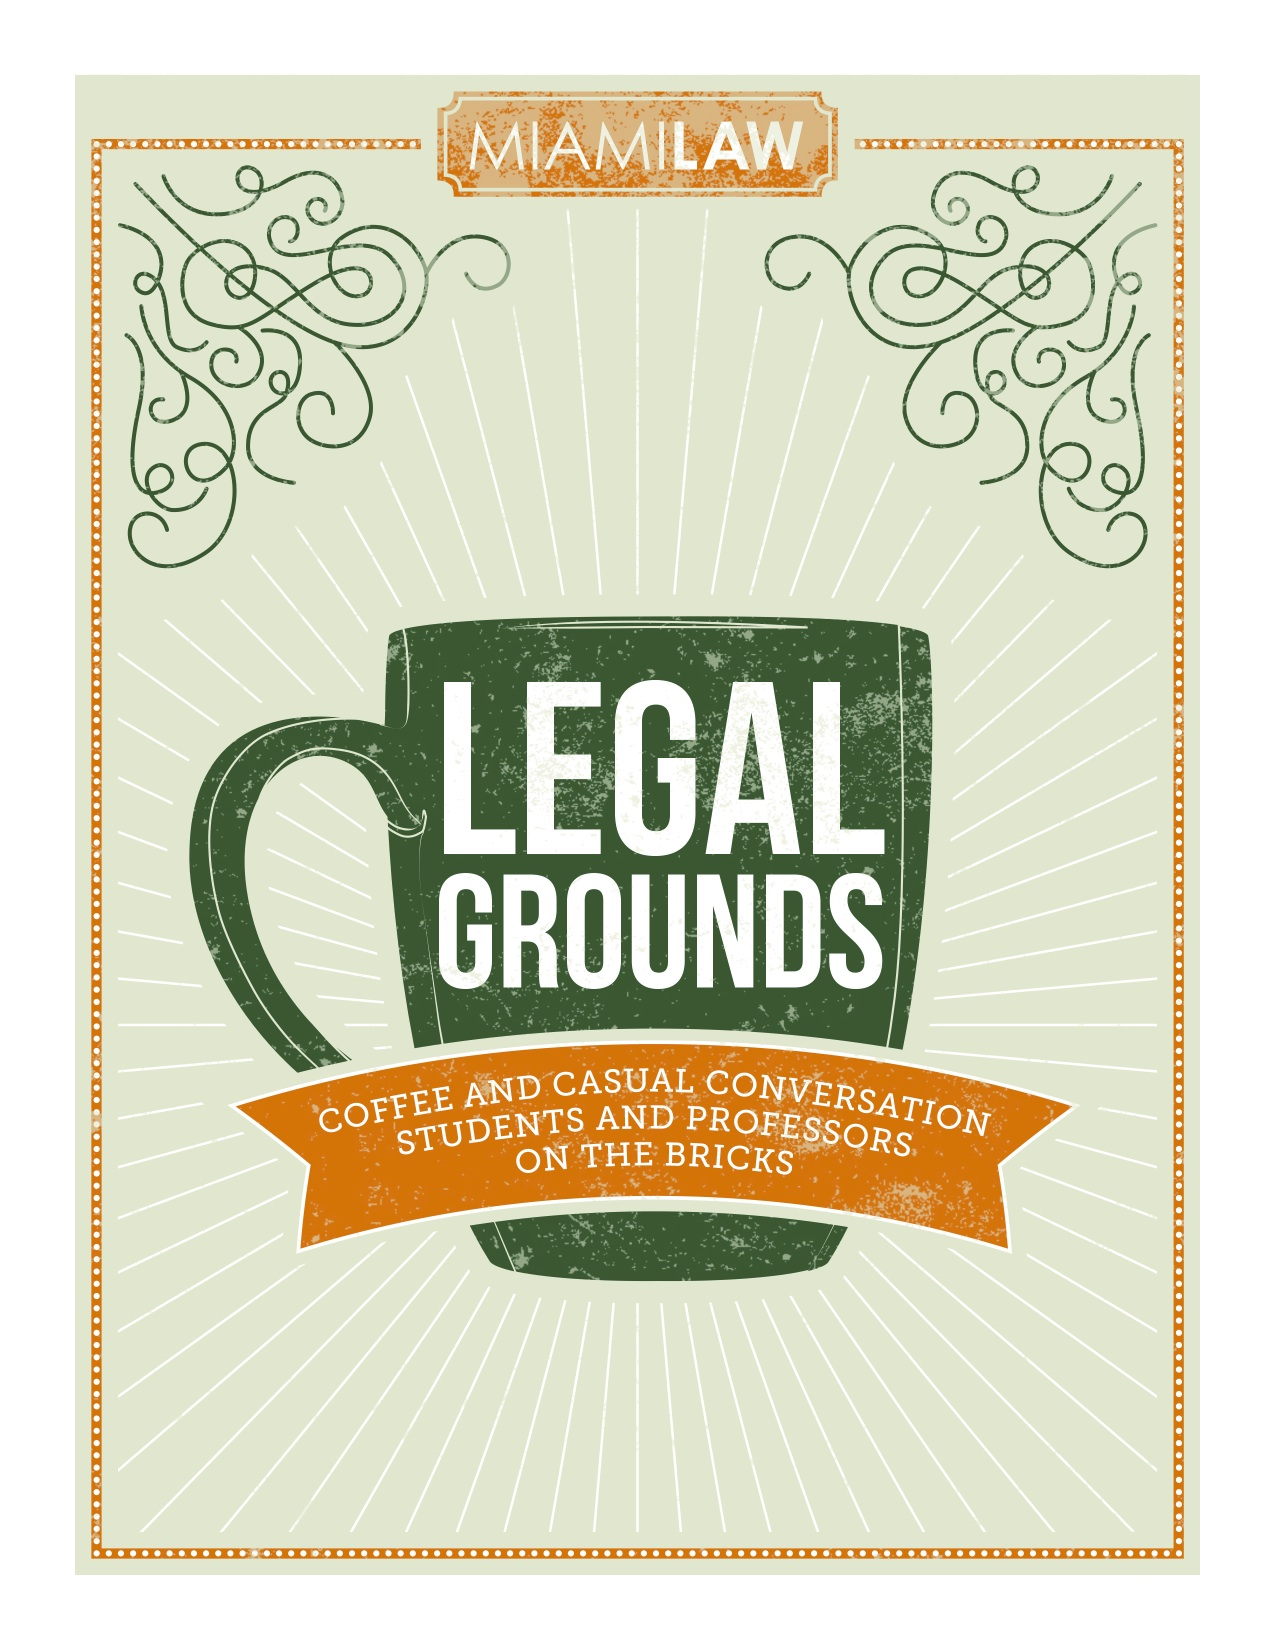 legal grounds logo